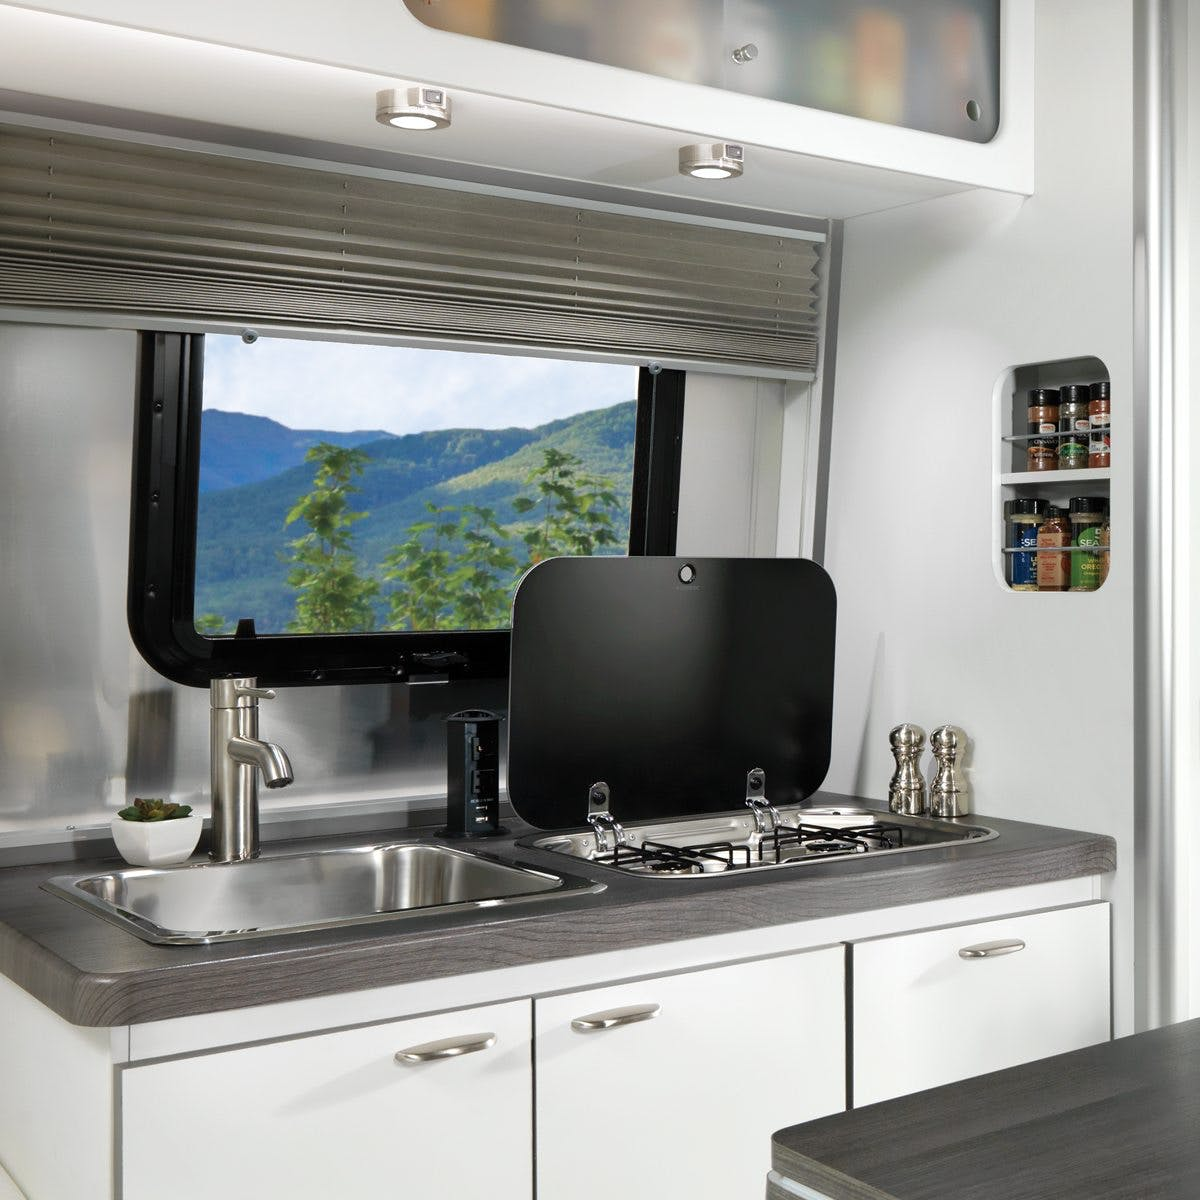 Nest by Airstream kitchen sink